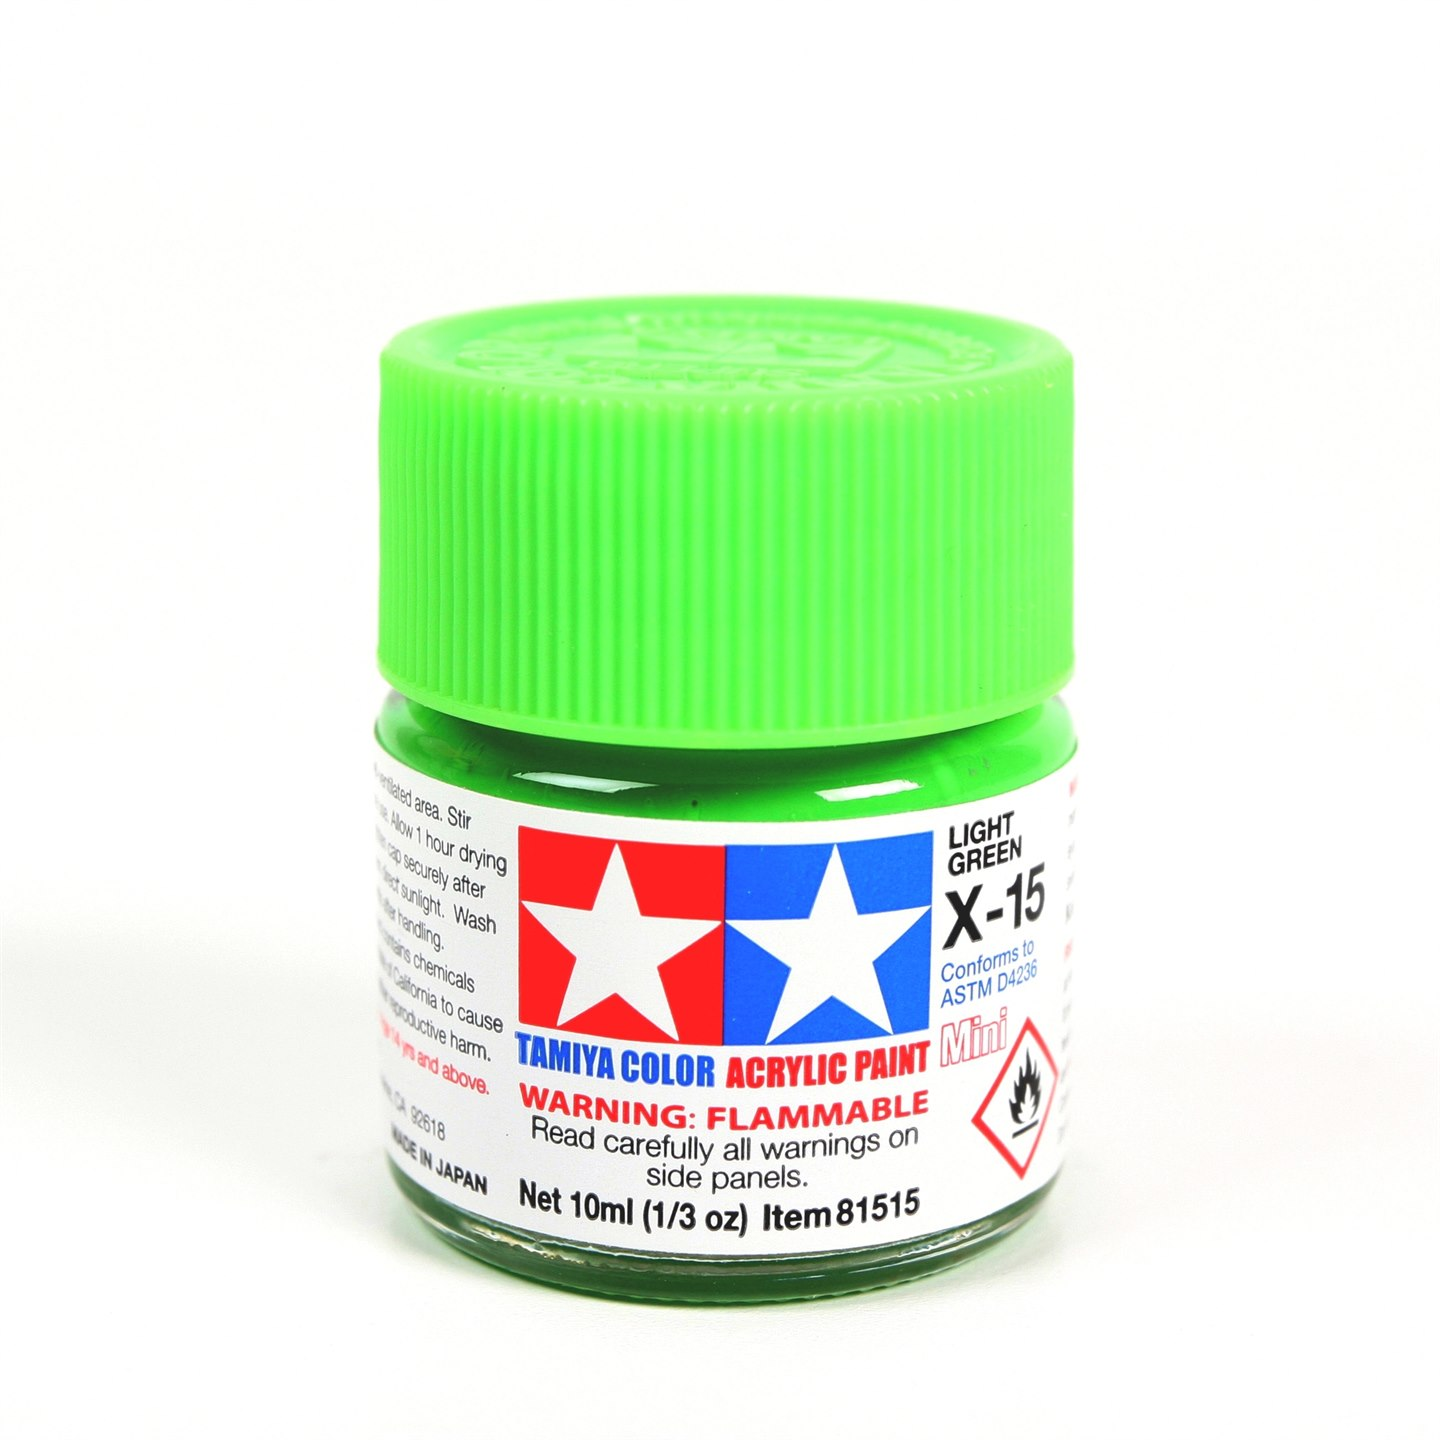 Tamiya Color Acrylic Paint Mini X-15 (Light Green) (10ml)